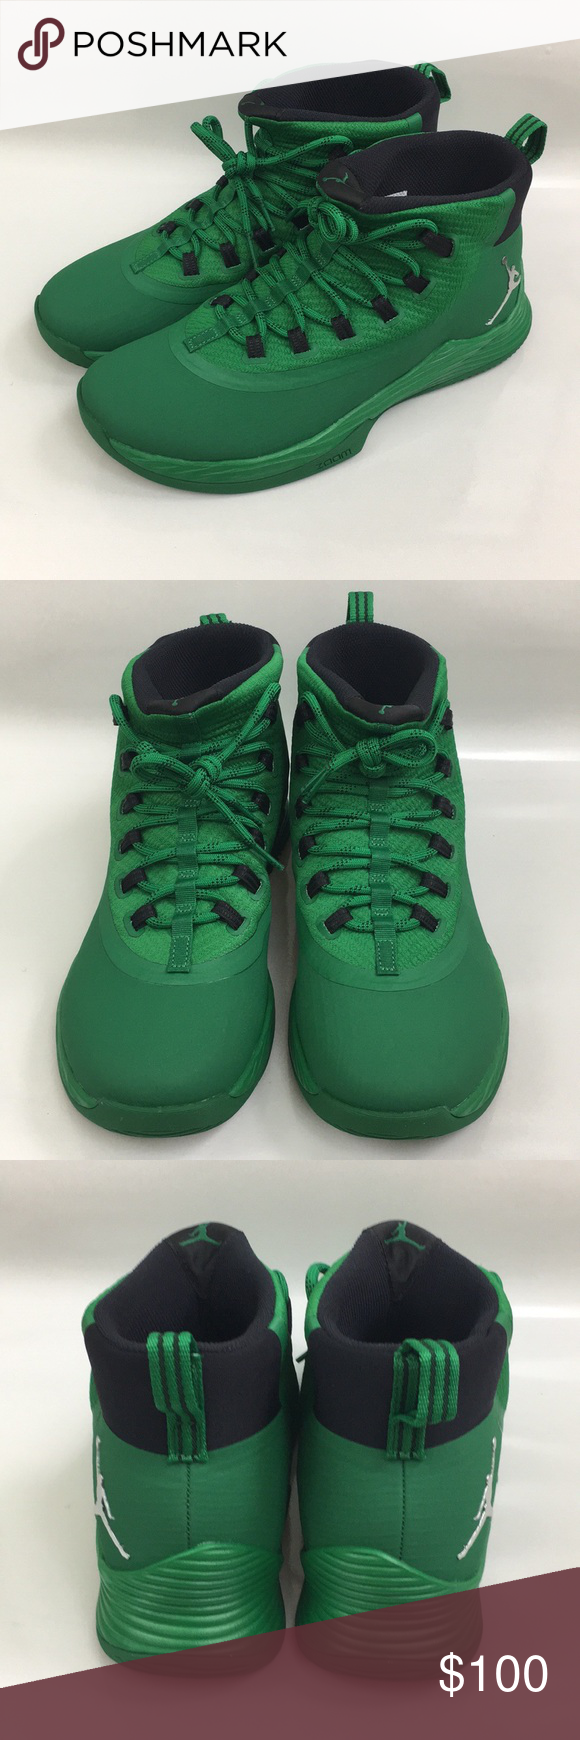 562893d5469b Nike Jordan Ultra Fly 2 Zoom TB Pine Green 12 ITEM  Nike Jordan Ultra Fly 2  Zoom TB Pine Green SIZE  12 CONDITION  New without box 100% Authentic Shoes  ...